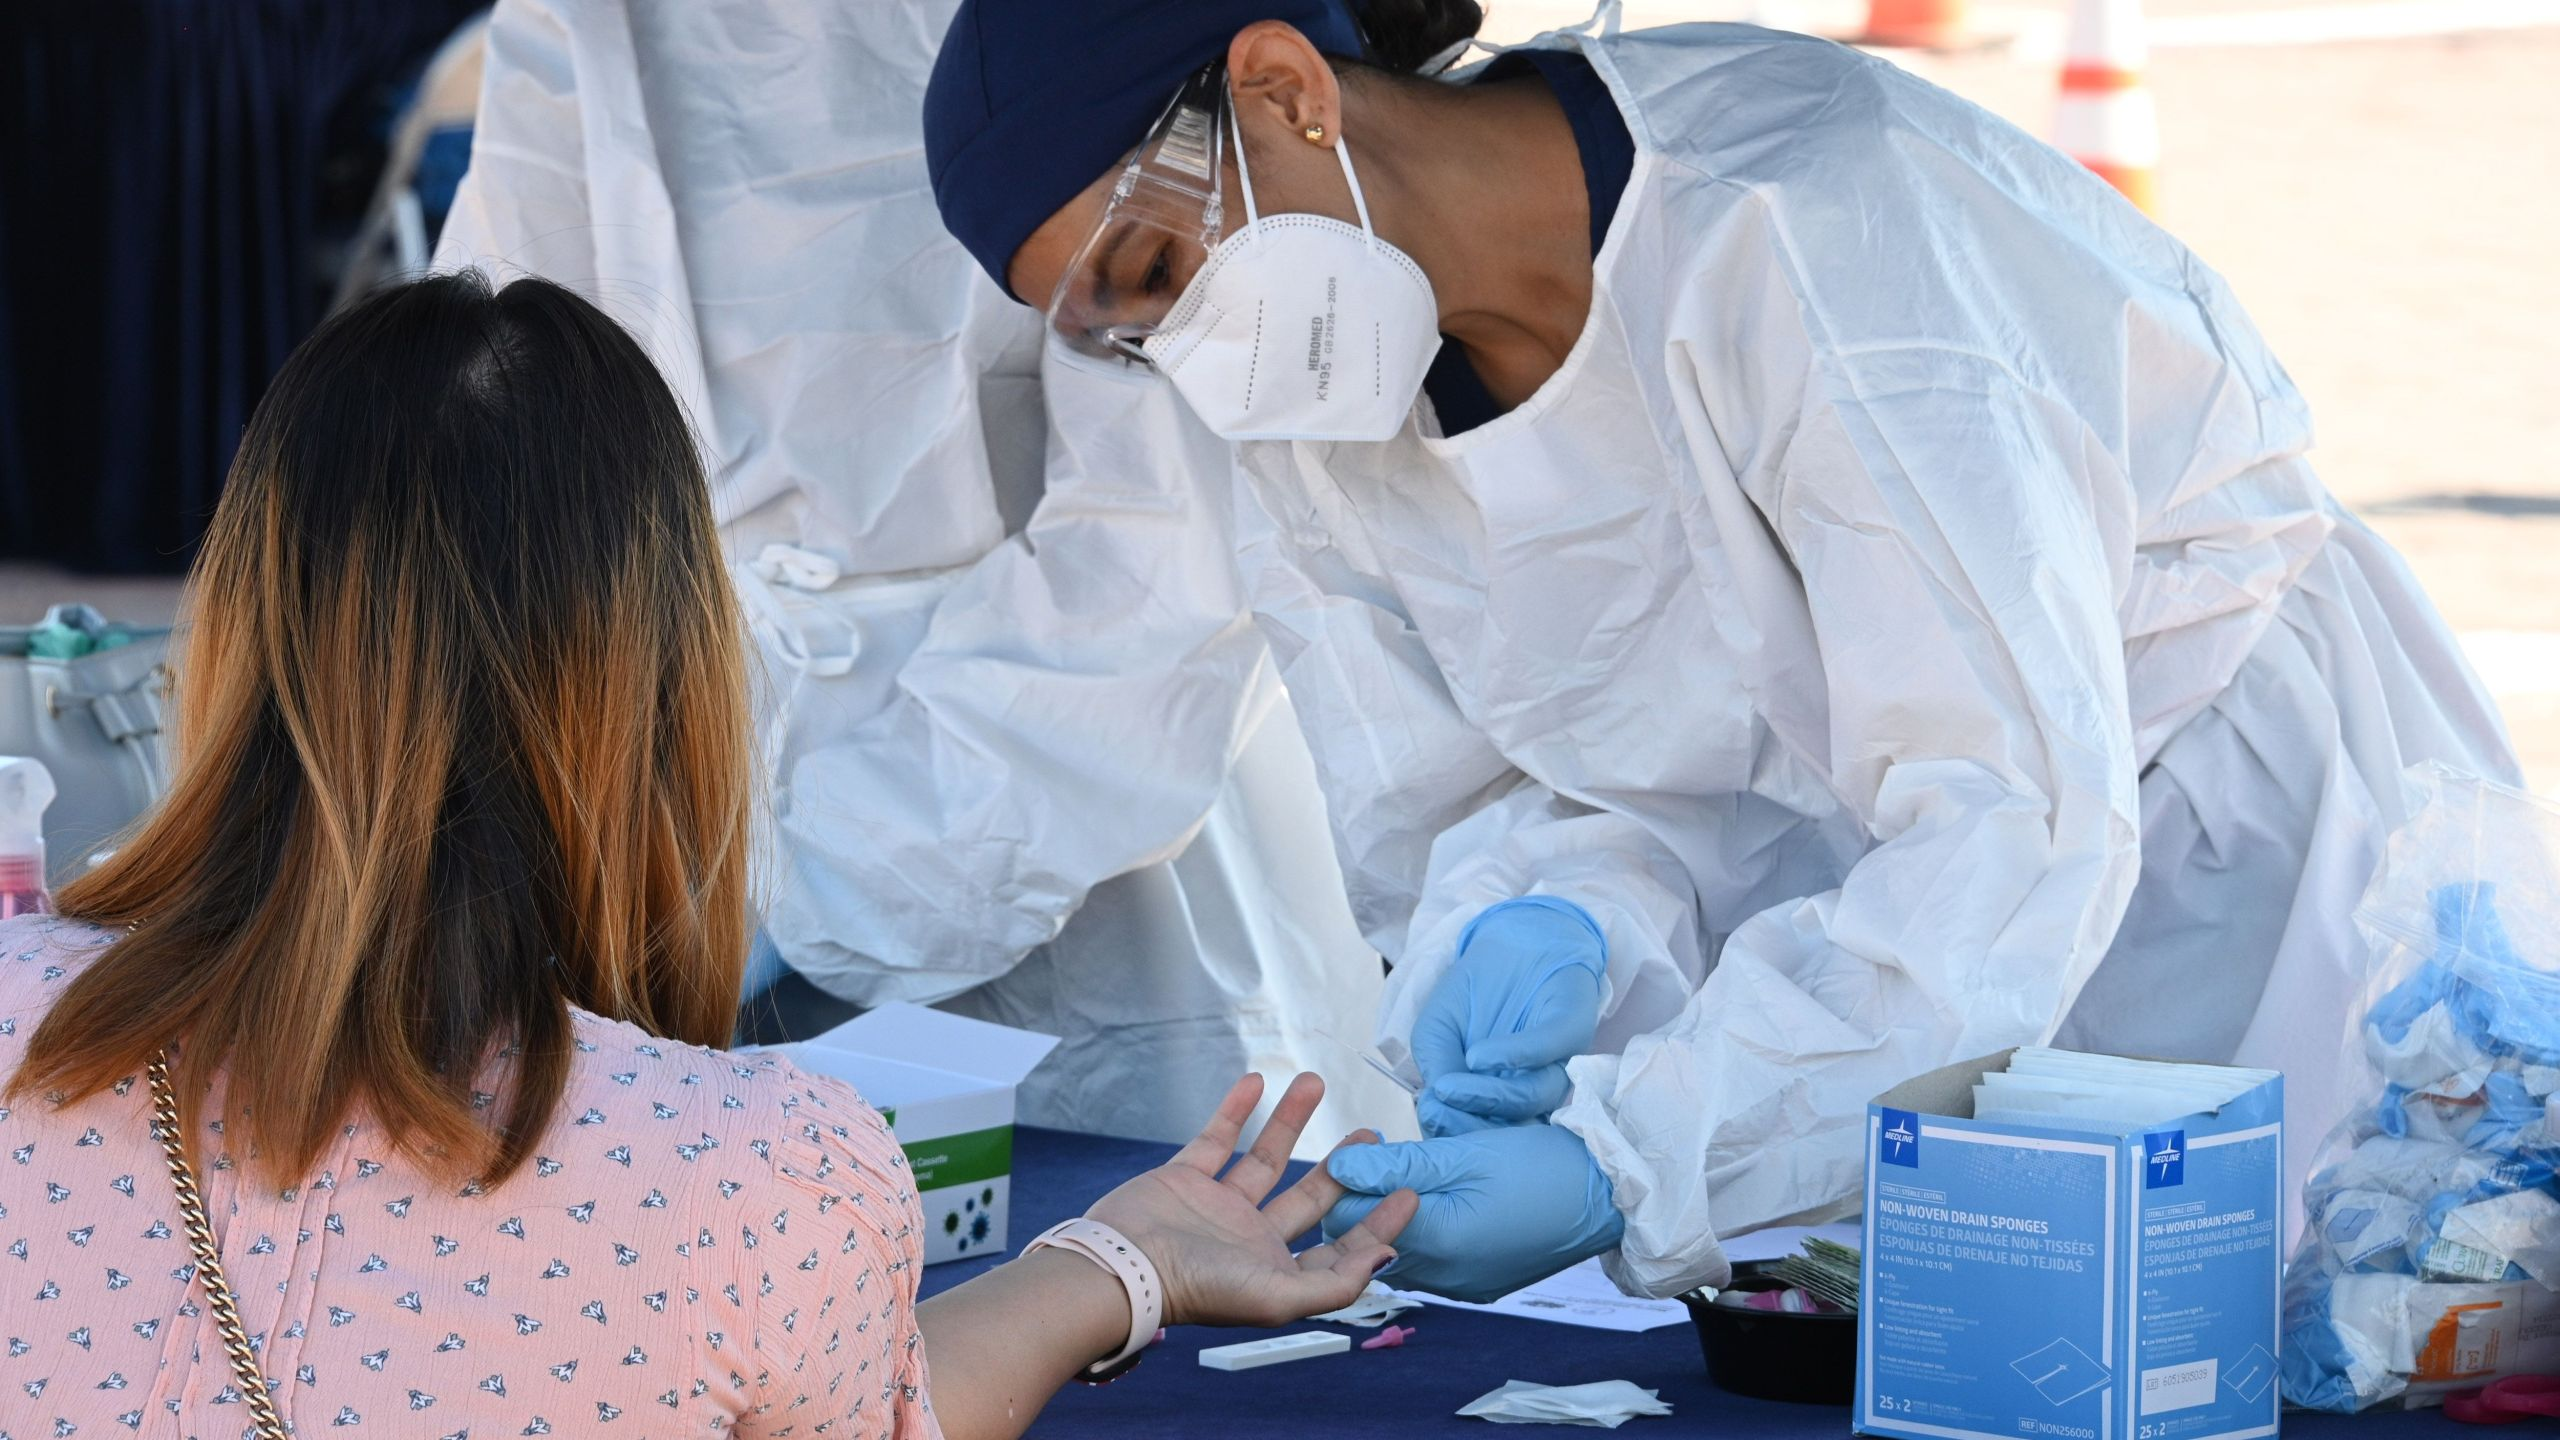 A person undergoes a finger prick blood sample as part of a coronavirus antibody rapid serological test on July 26, 2020 in San Dimas, California, 30 miles east of Los Angeles. (ROBYN BECK/AFP via Getty Images)